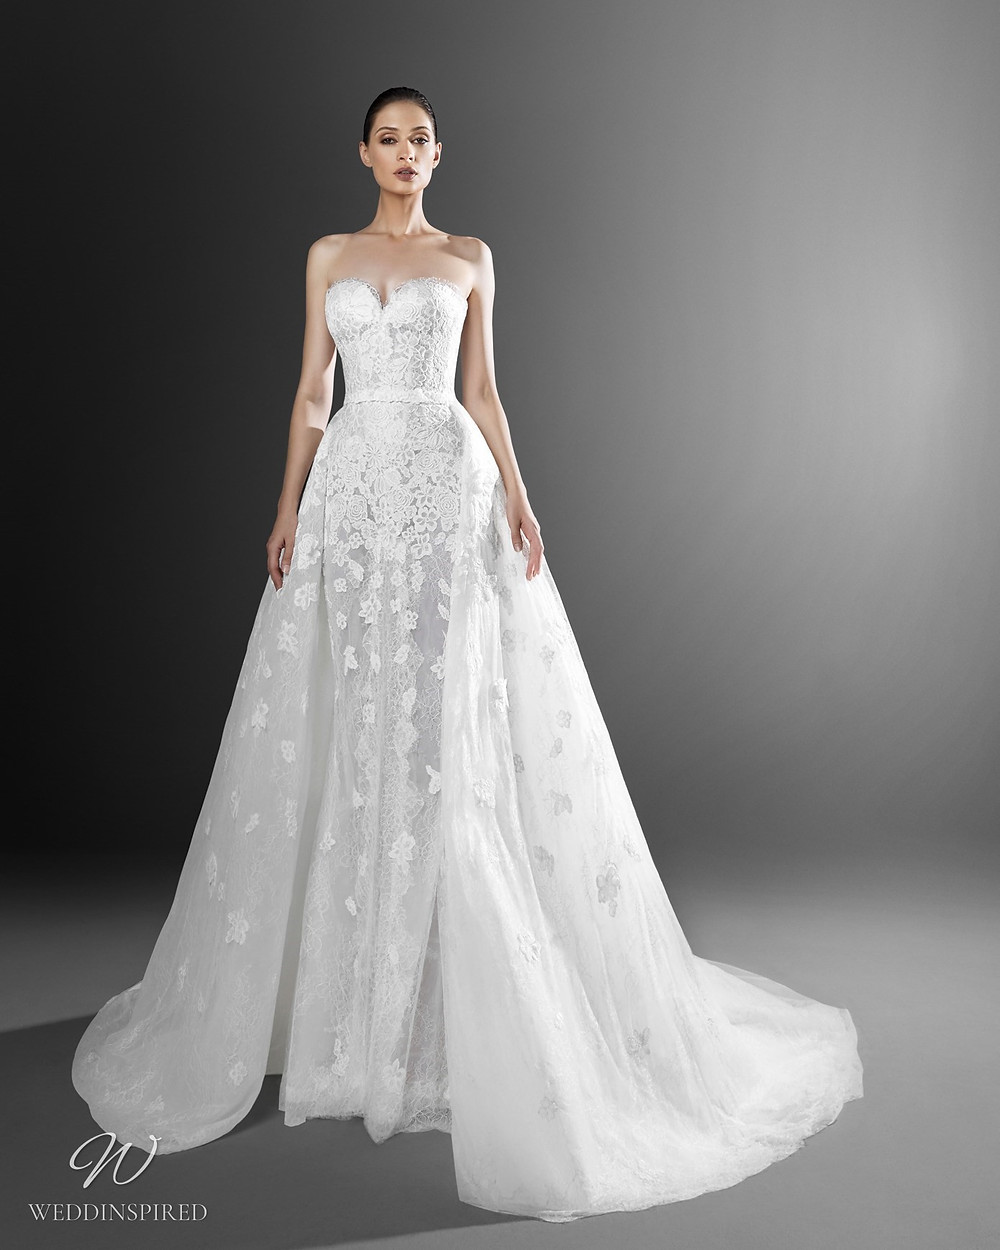 A Zuhair Murad mermaid off the shoulder wedding dress with a sweetheart neckline, lace and a detachable skirt